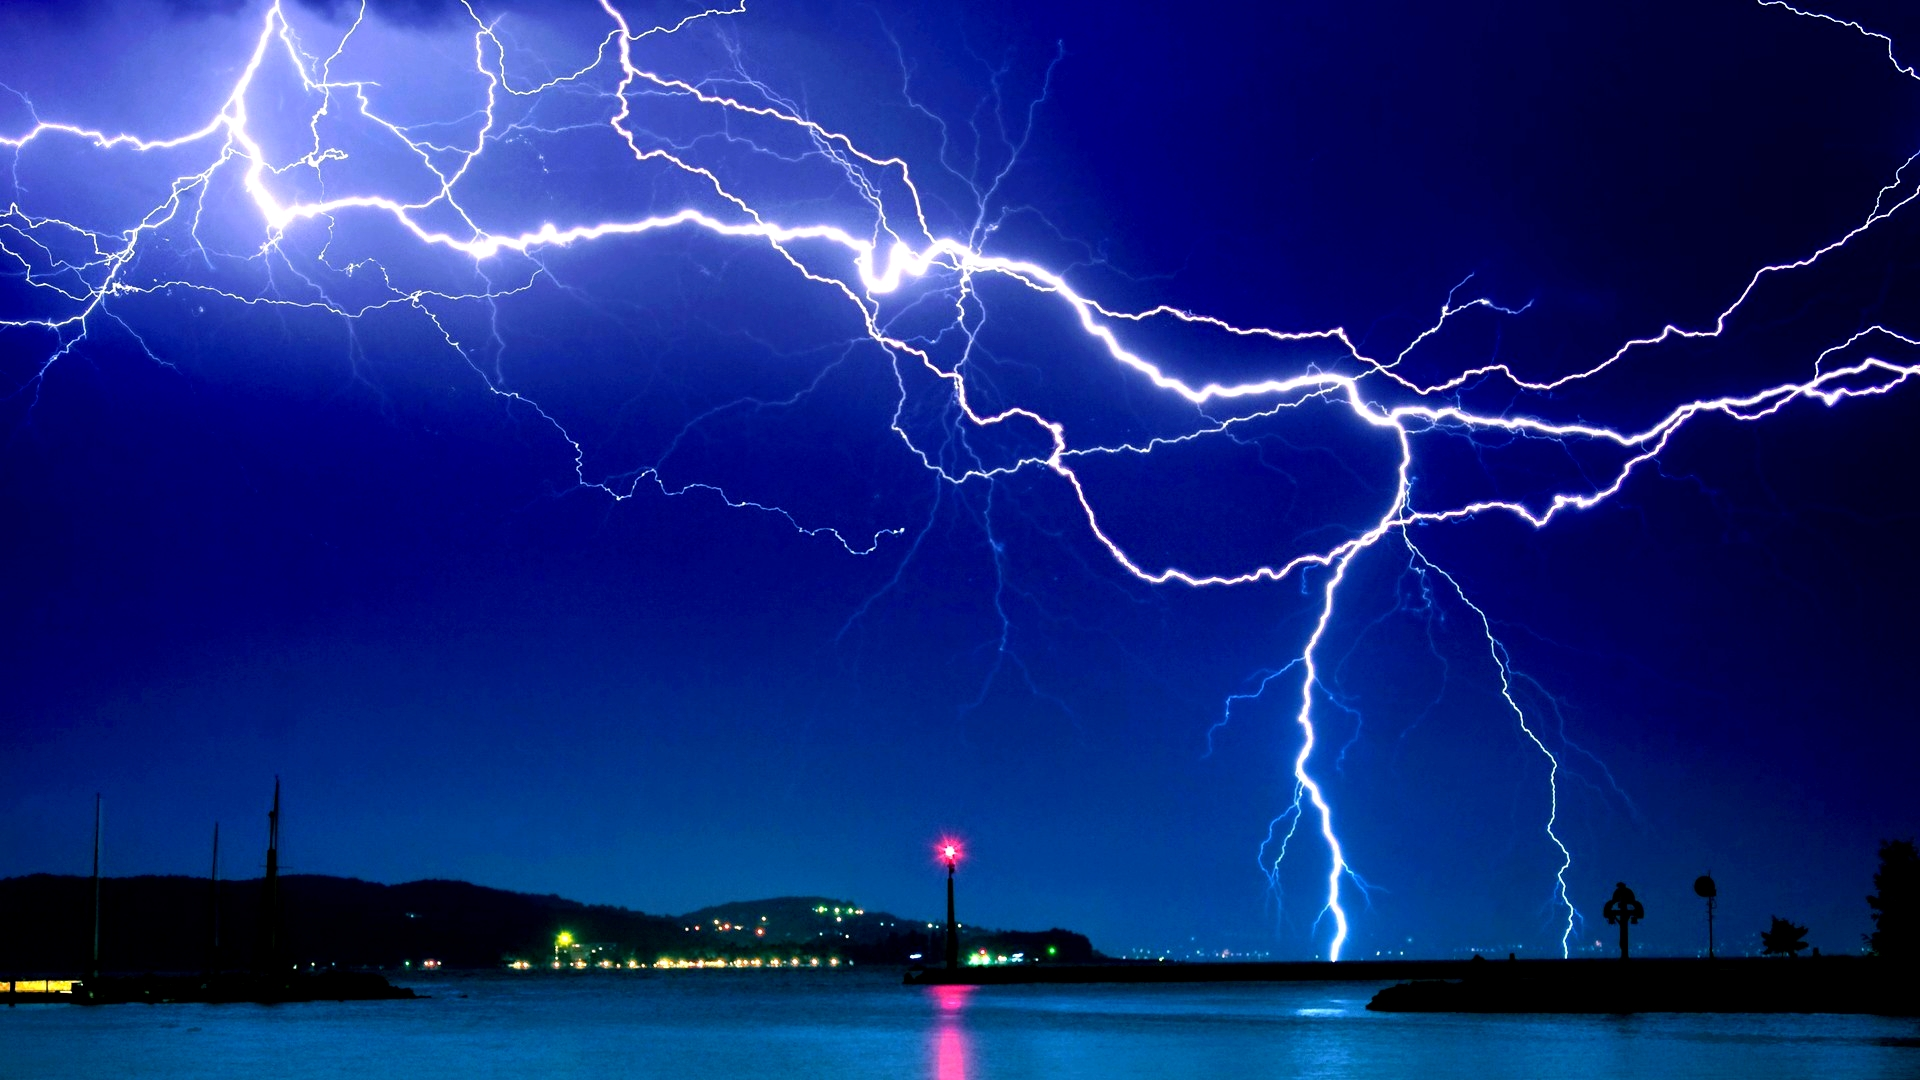 Lightning Background Wallpapers WIN10 THEMES 1920x1080